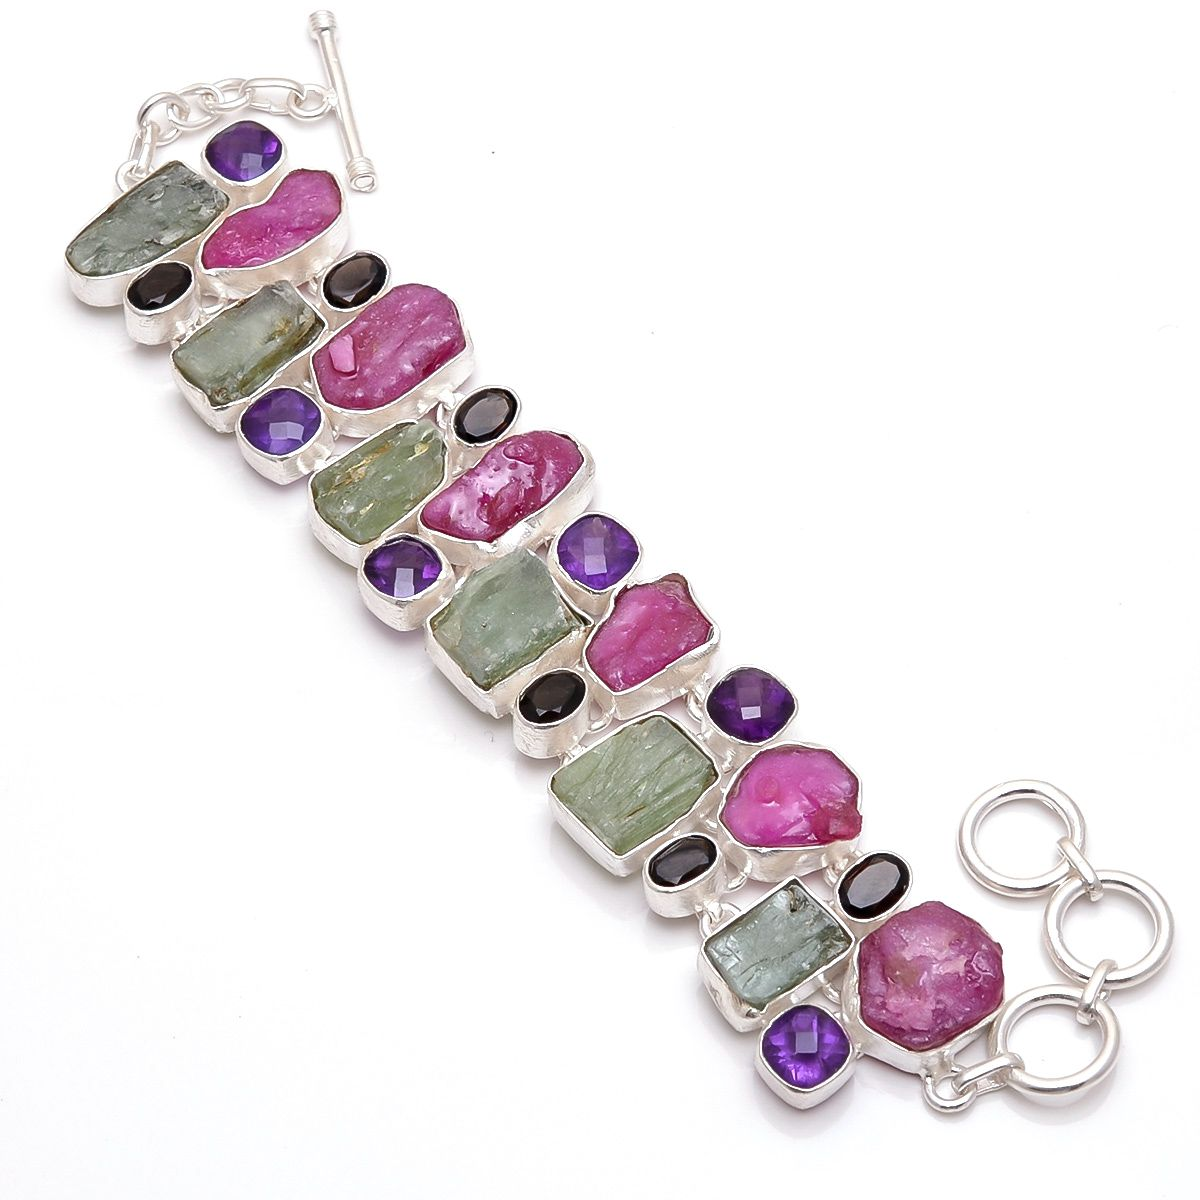 gleam blue bracelets gemstone amethyst fine topaz silver citrine made and excellent quality multi with p garnet studded of peridot bracelet sterling in for gifting